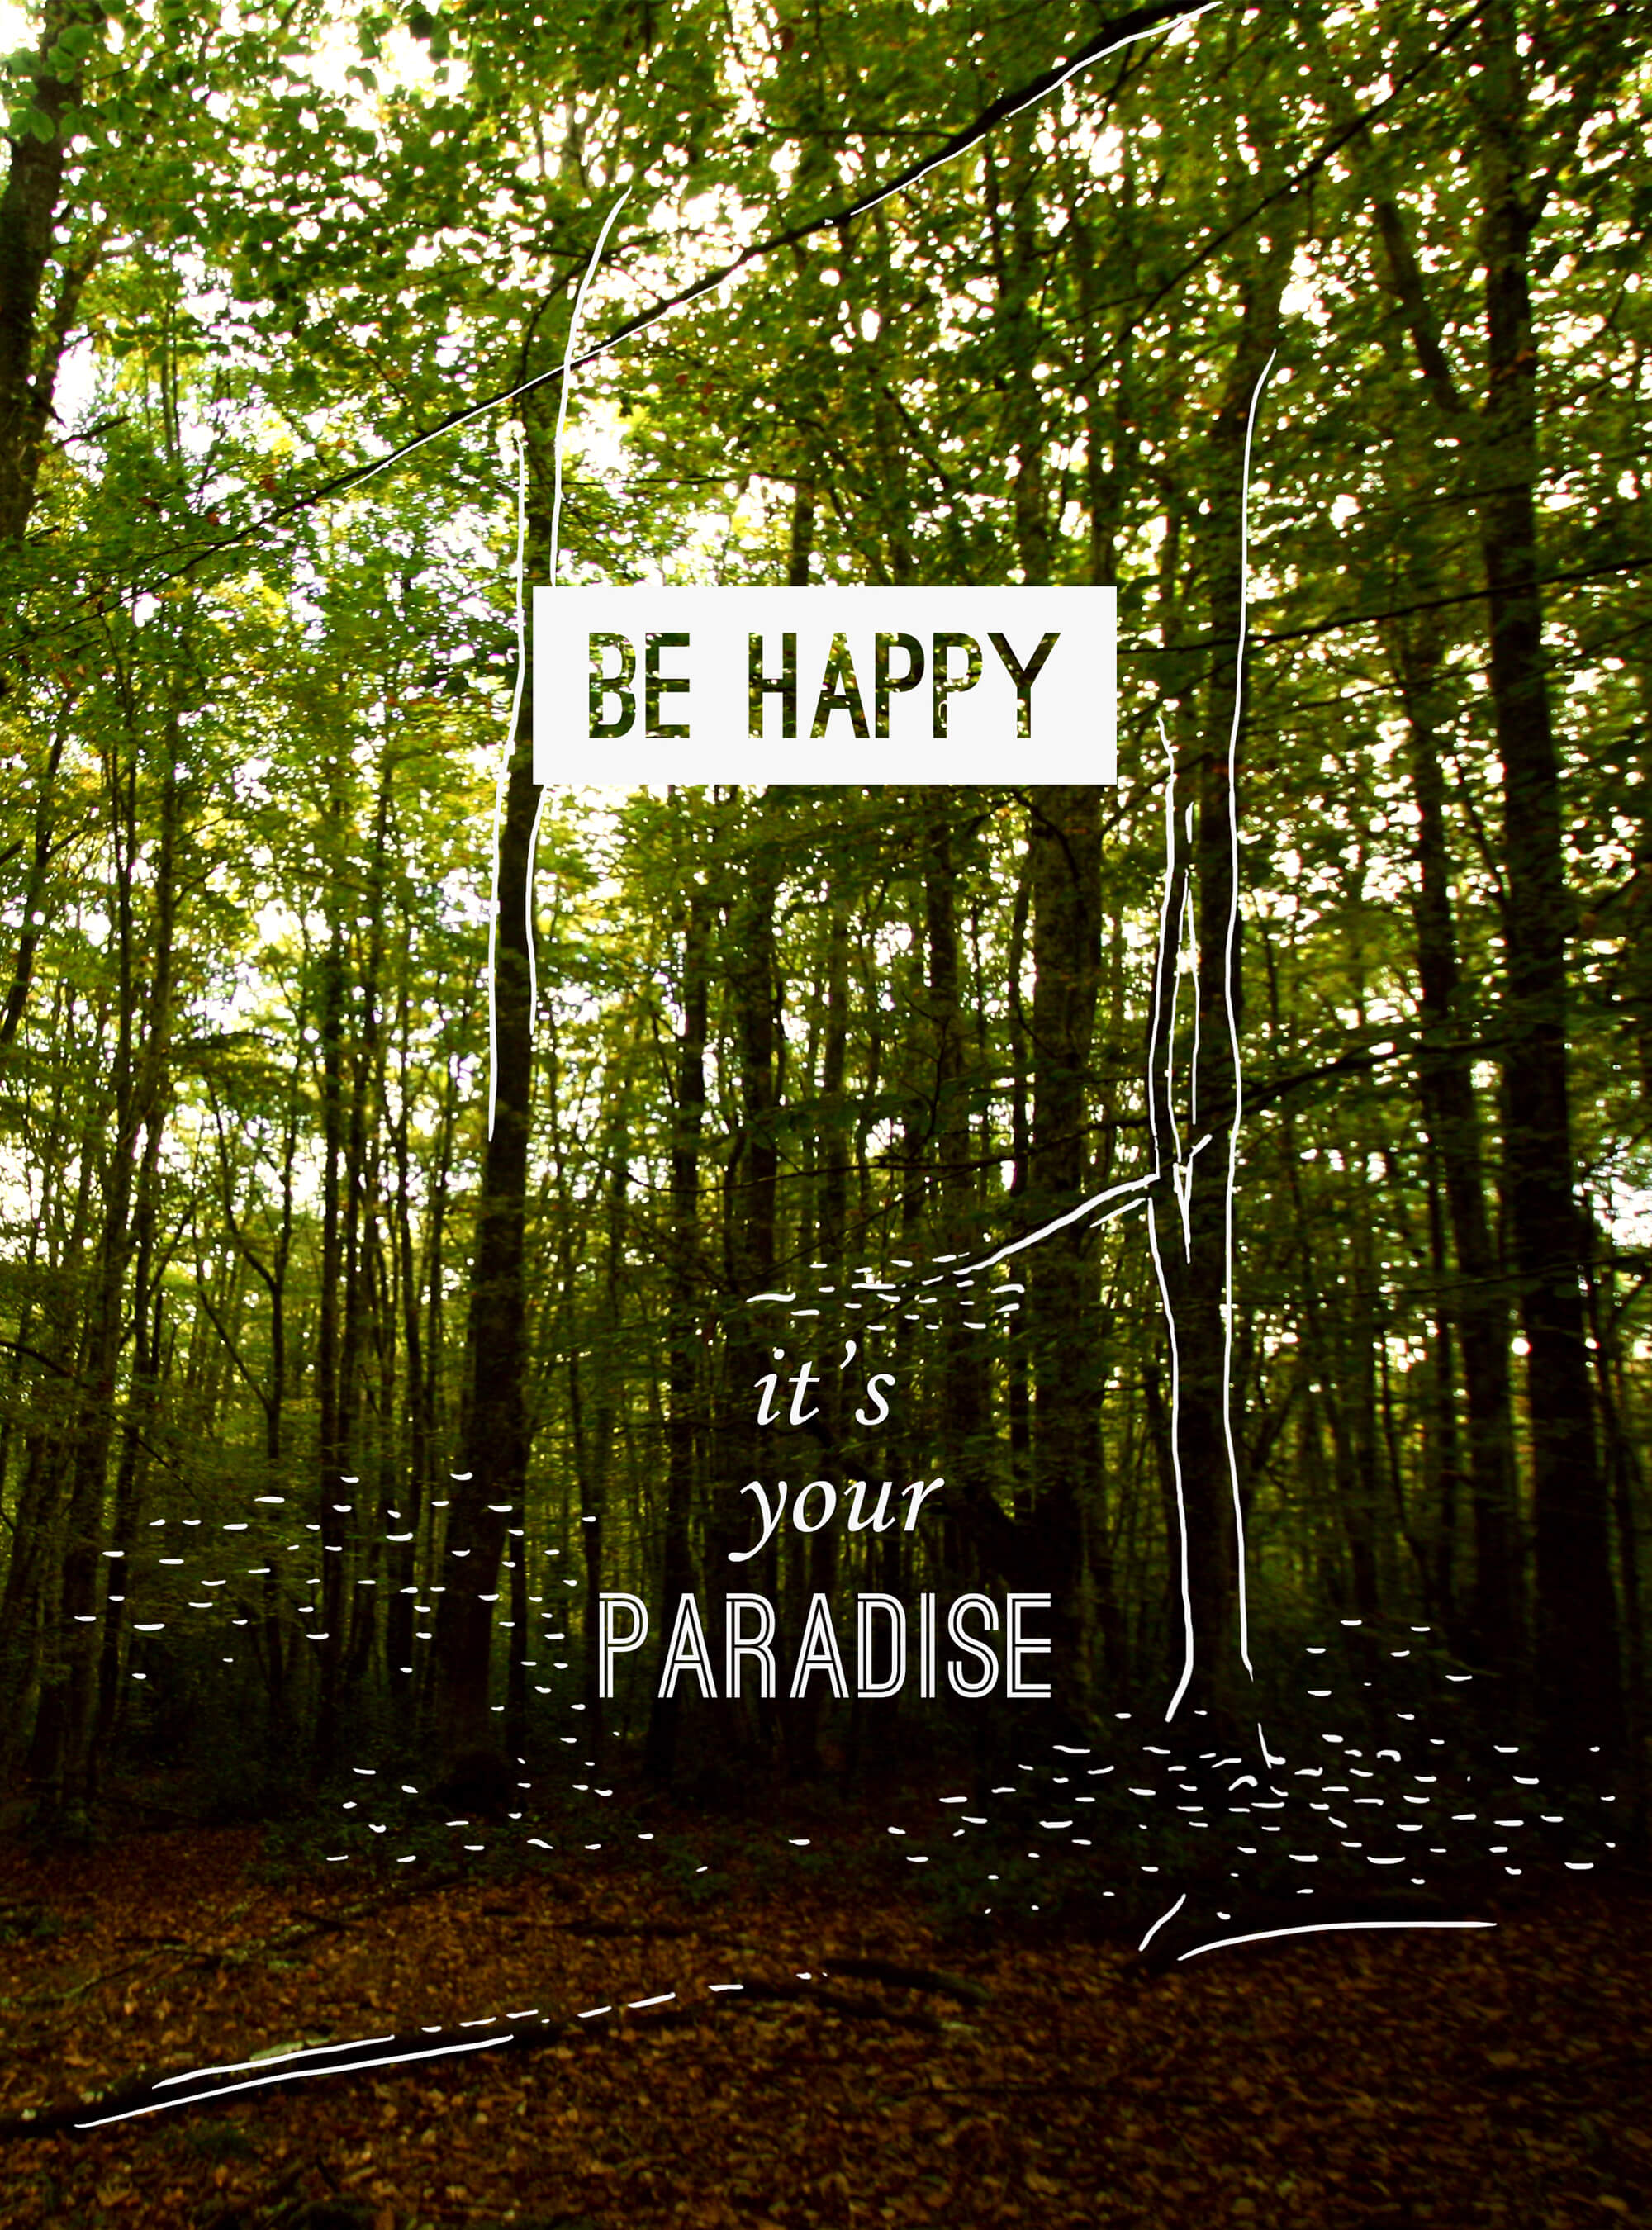 be happy forest illustration